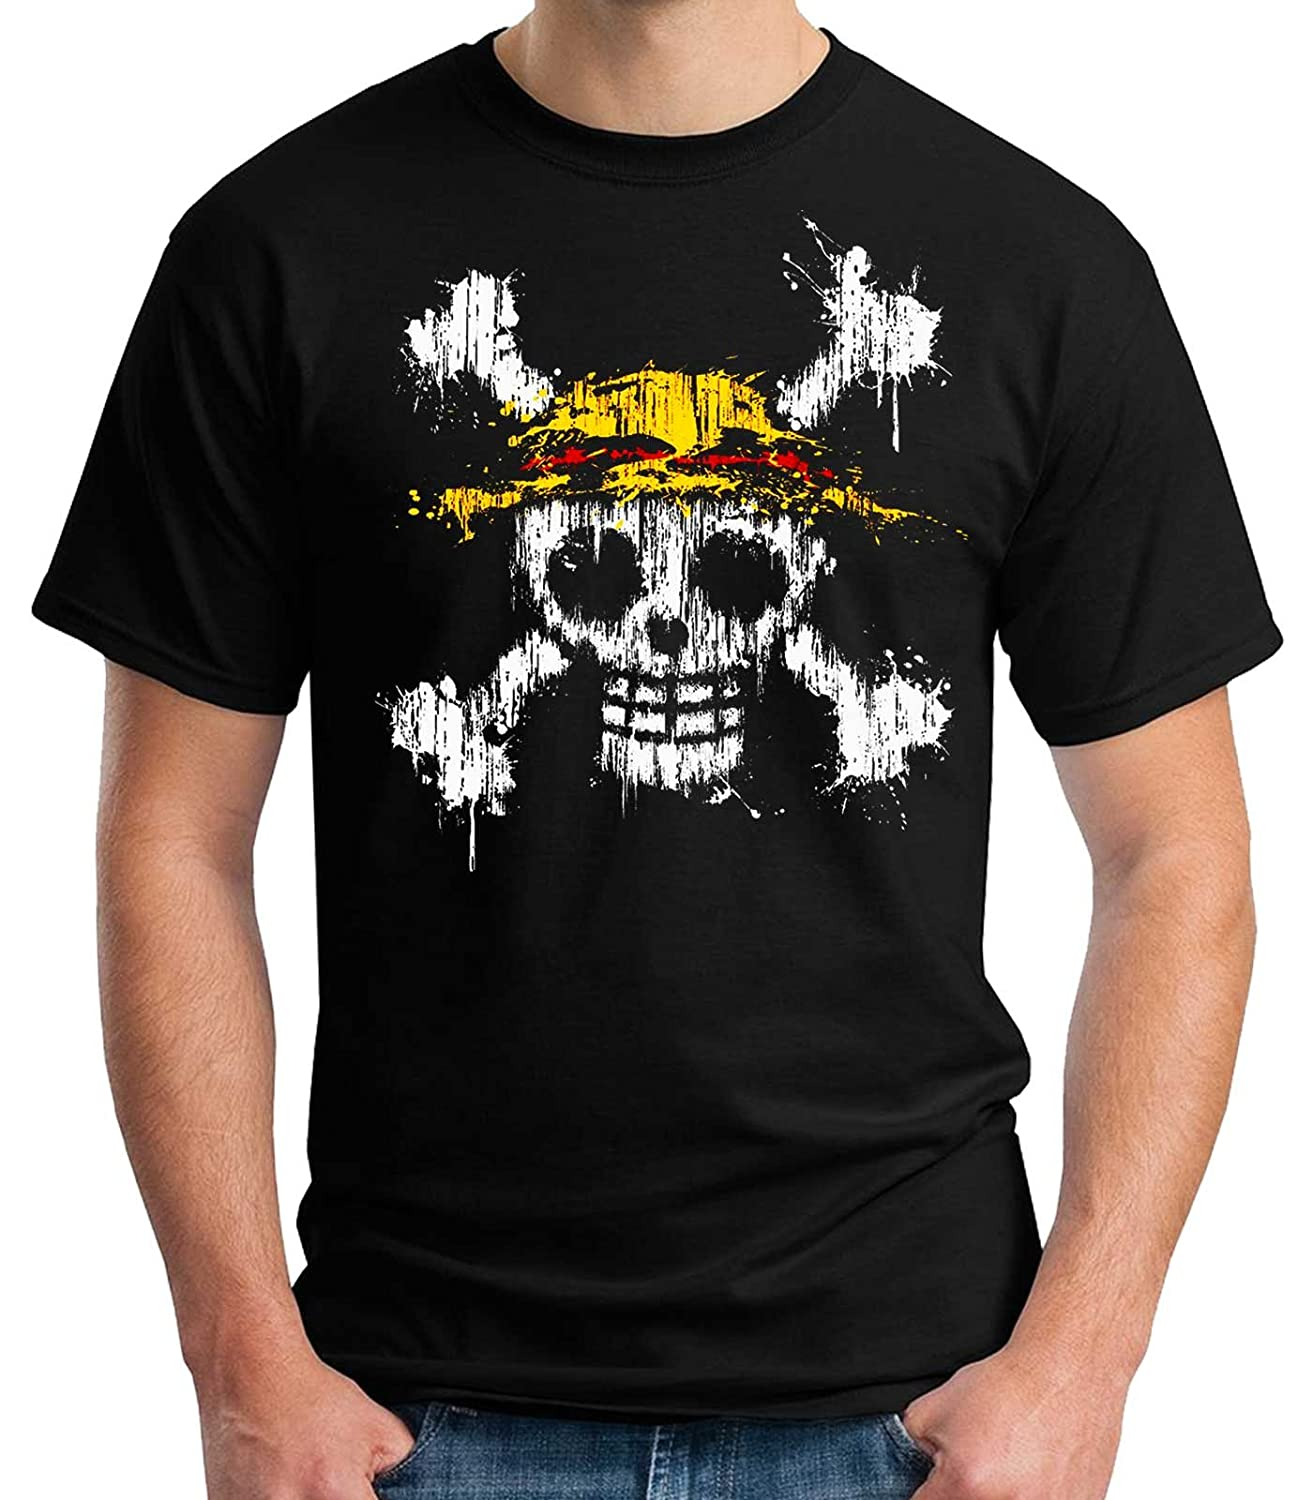 35mm - Camiseta Hombre One Piece Mancha Pintura